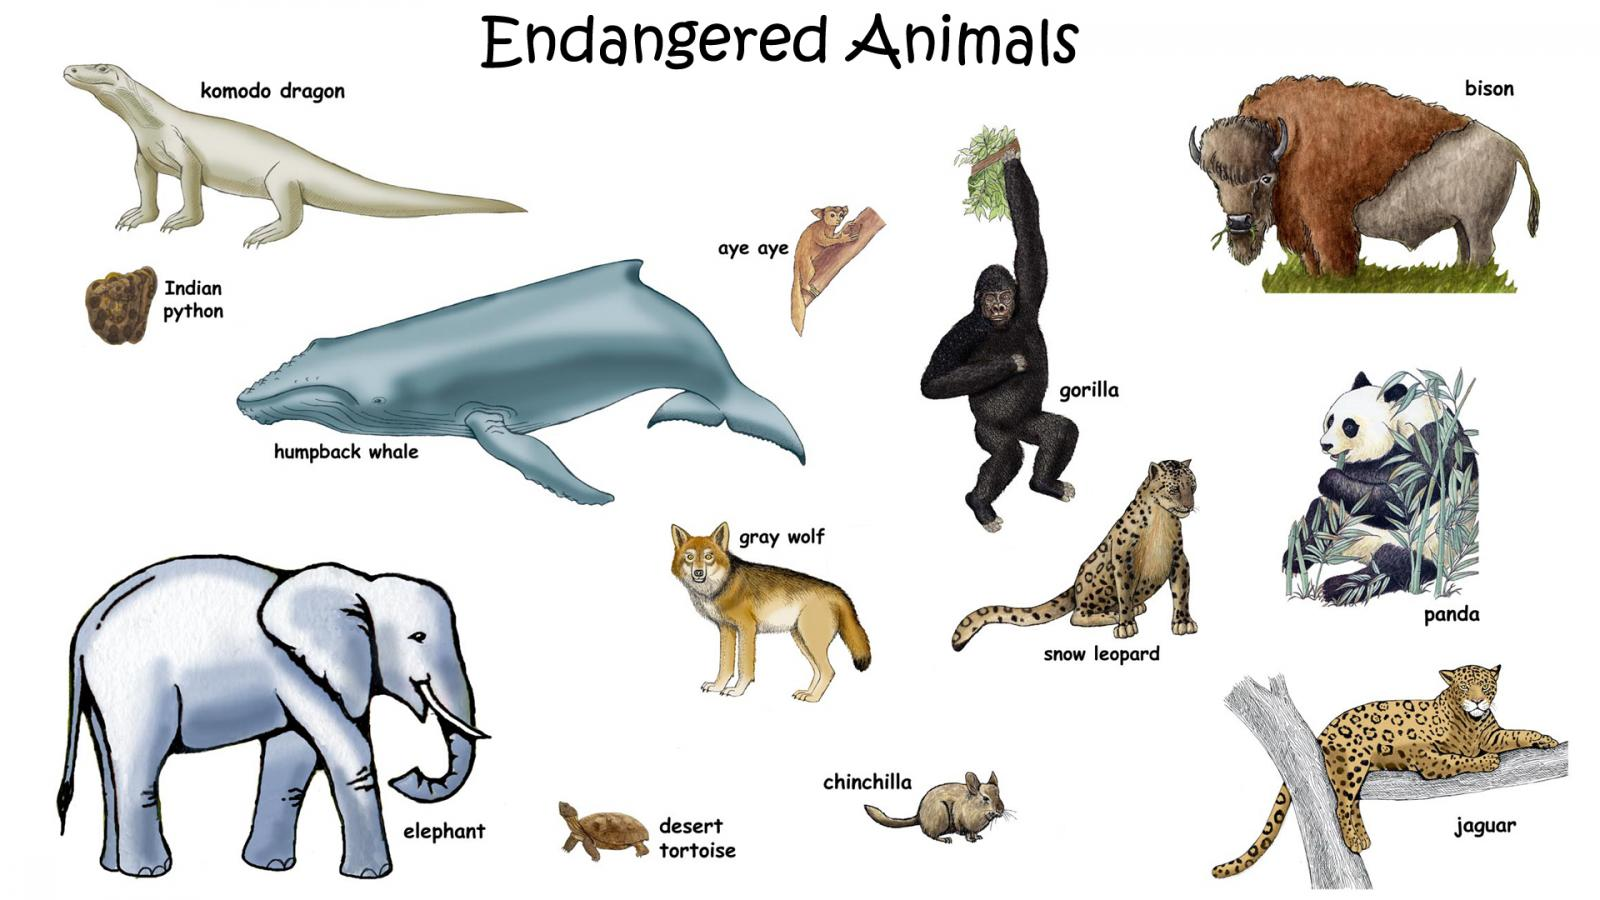 Picture of endangered animals with names for kids hd for Endangered fish species